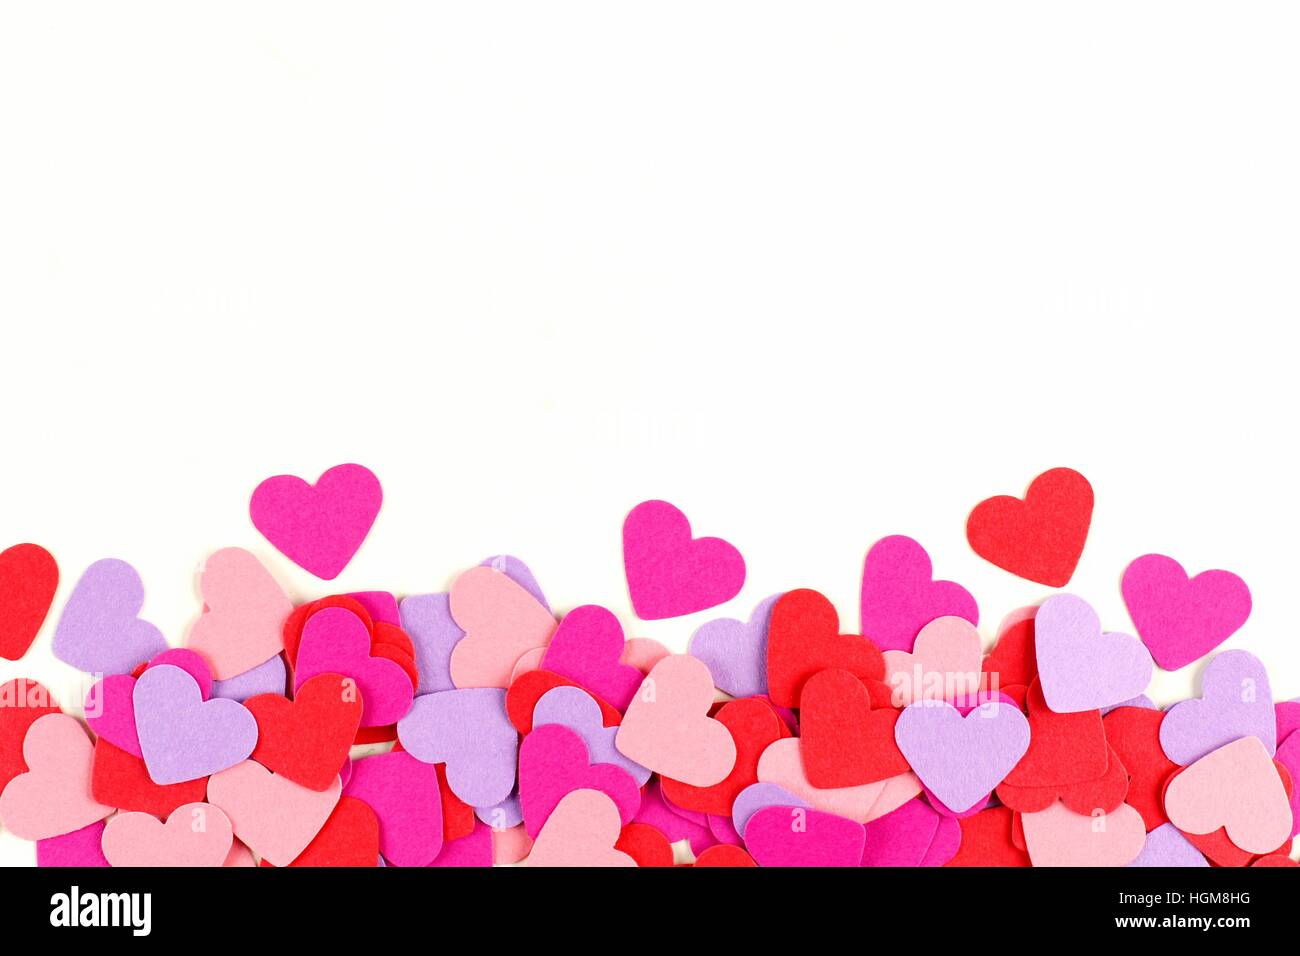 Valentines Day border of colorful paper hearts over white - Stock Image